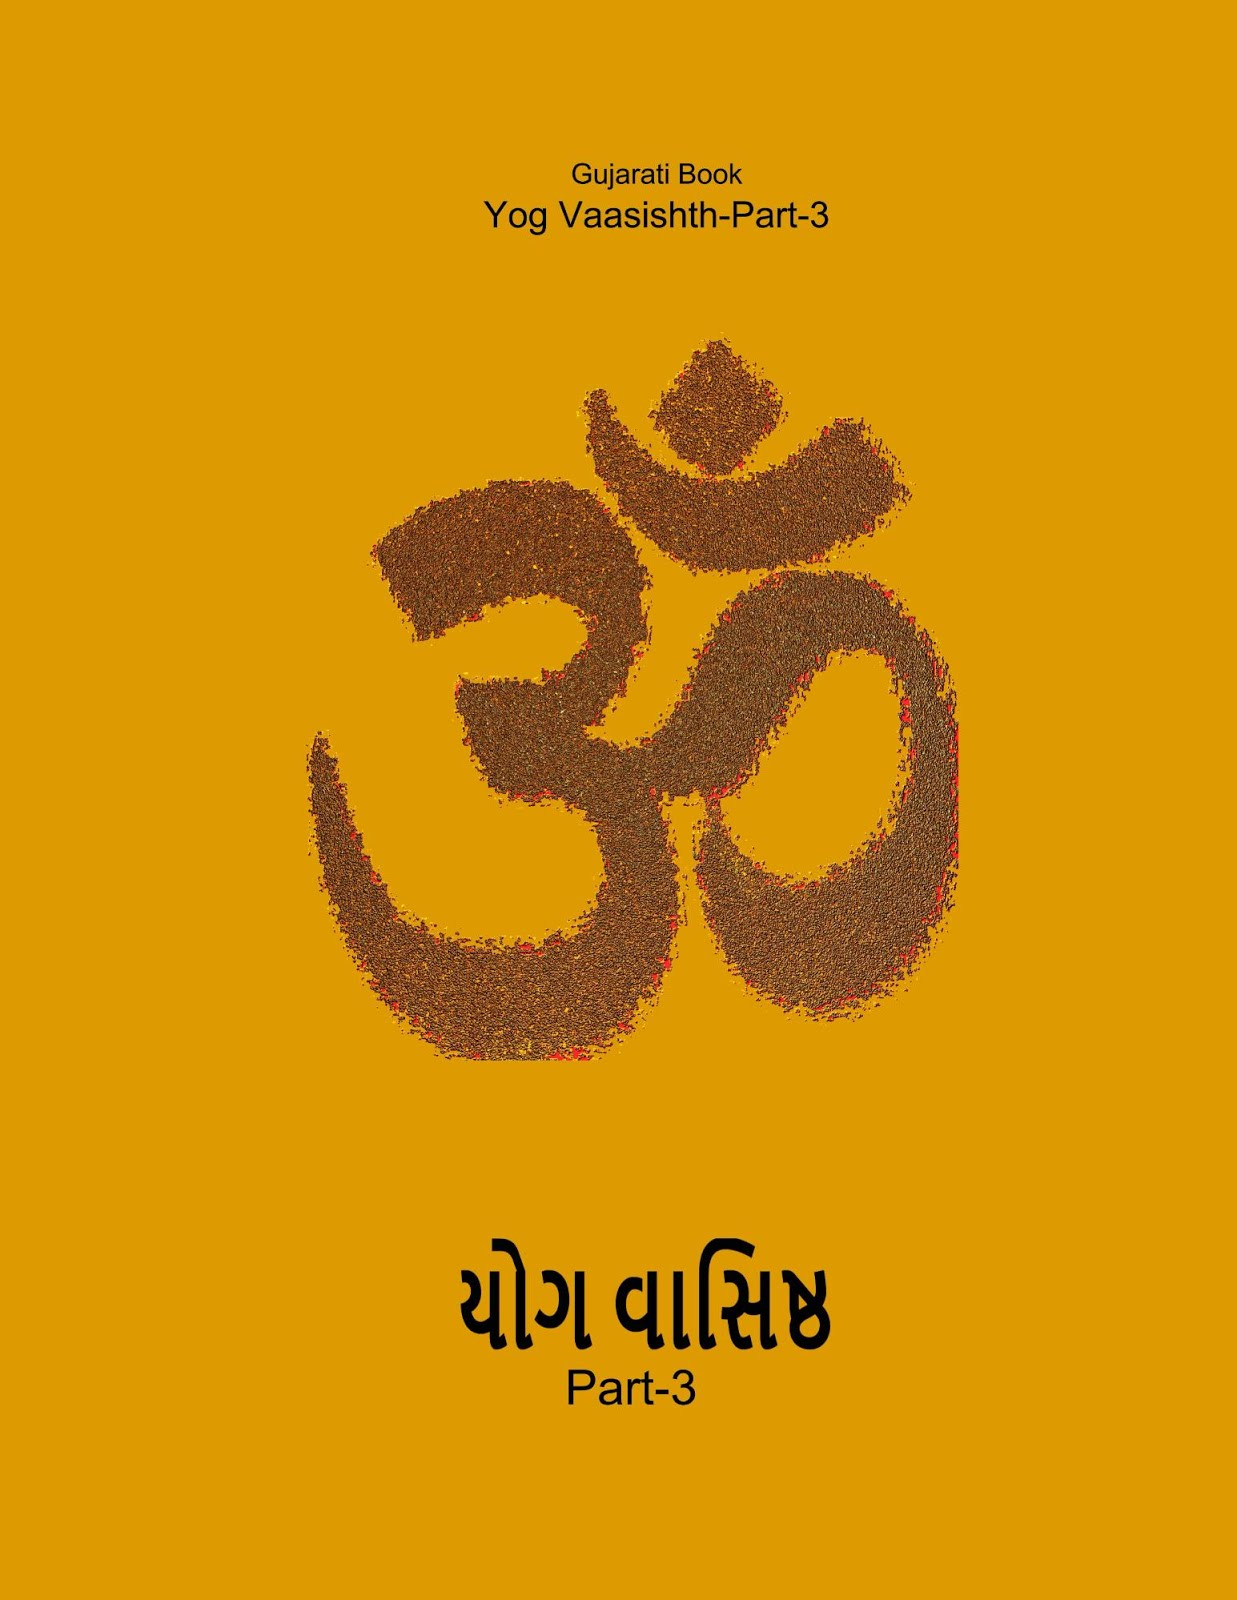 Yoga Vasisth-Part-3